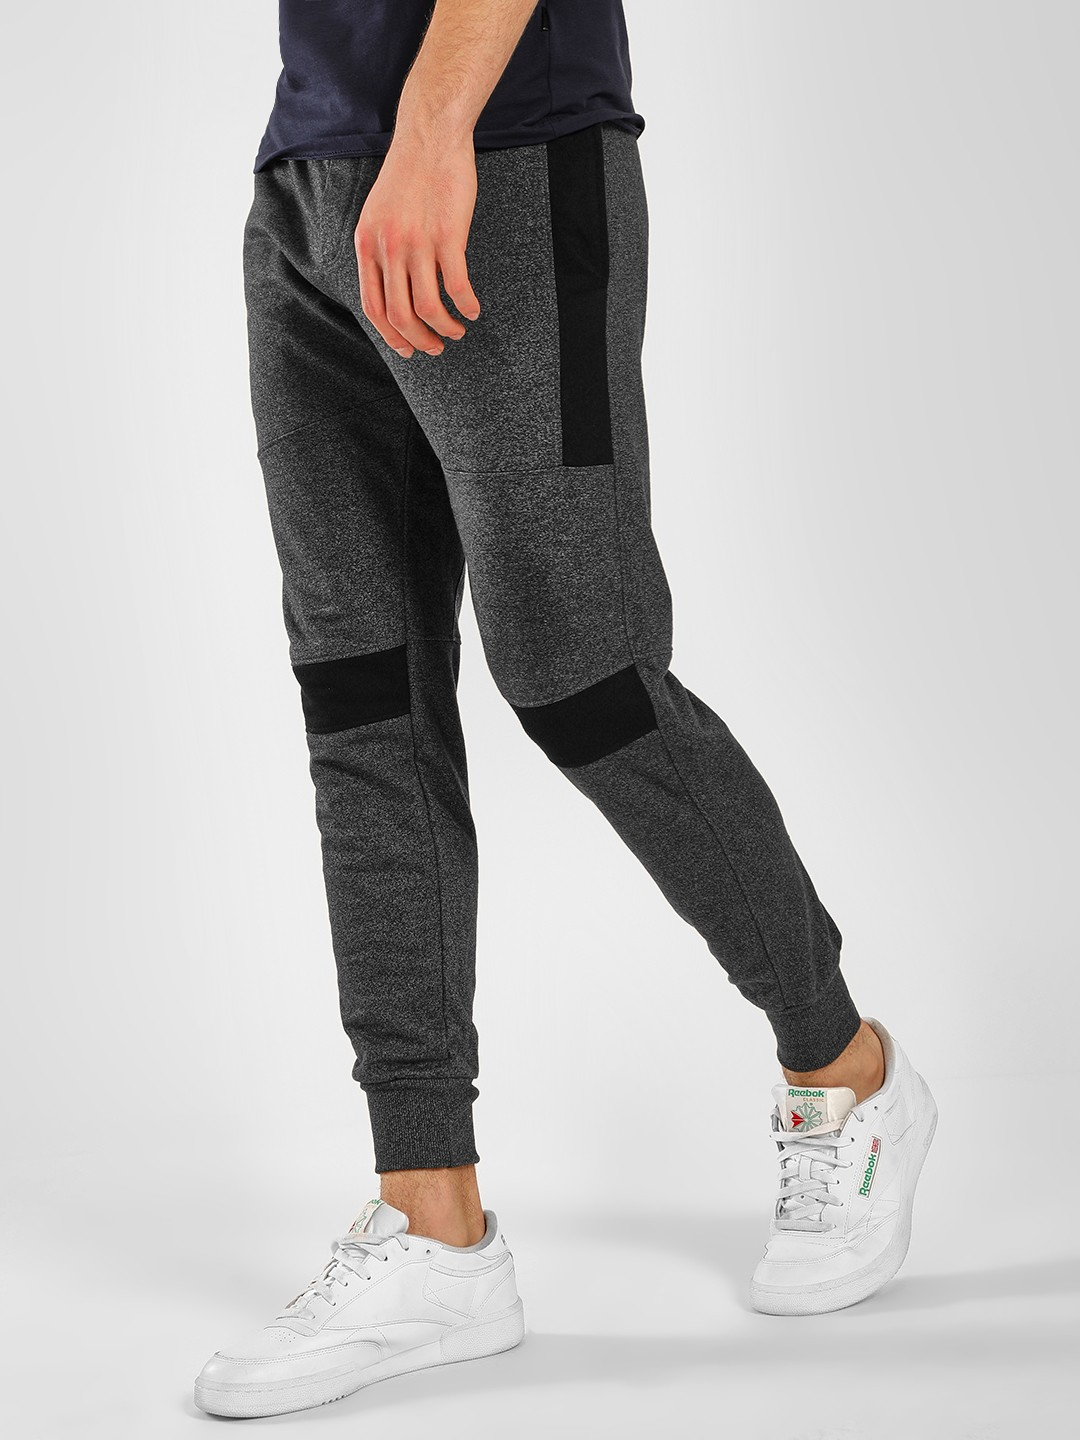 SKULT By Shahid Kapoor Grey Textured Knit Panelled Joggers 1